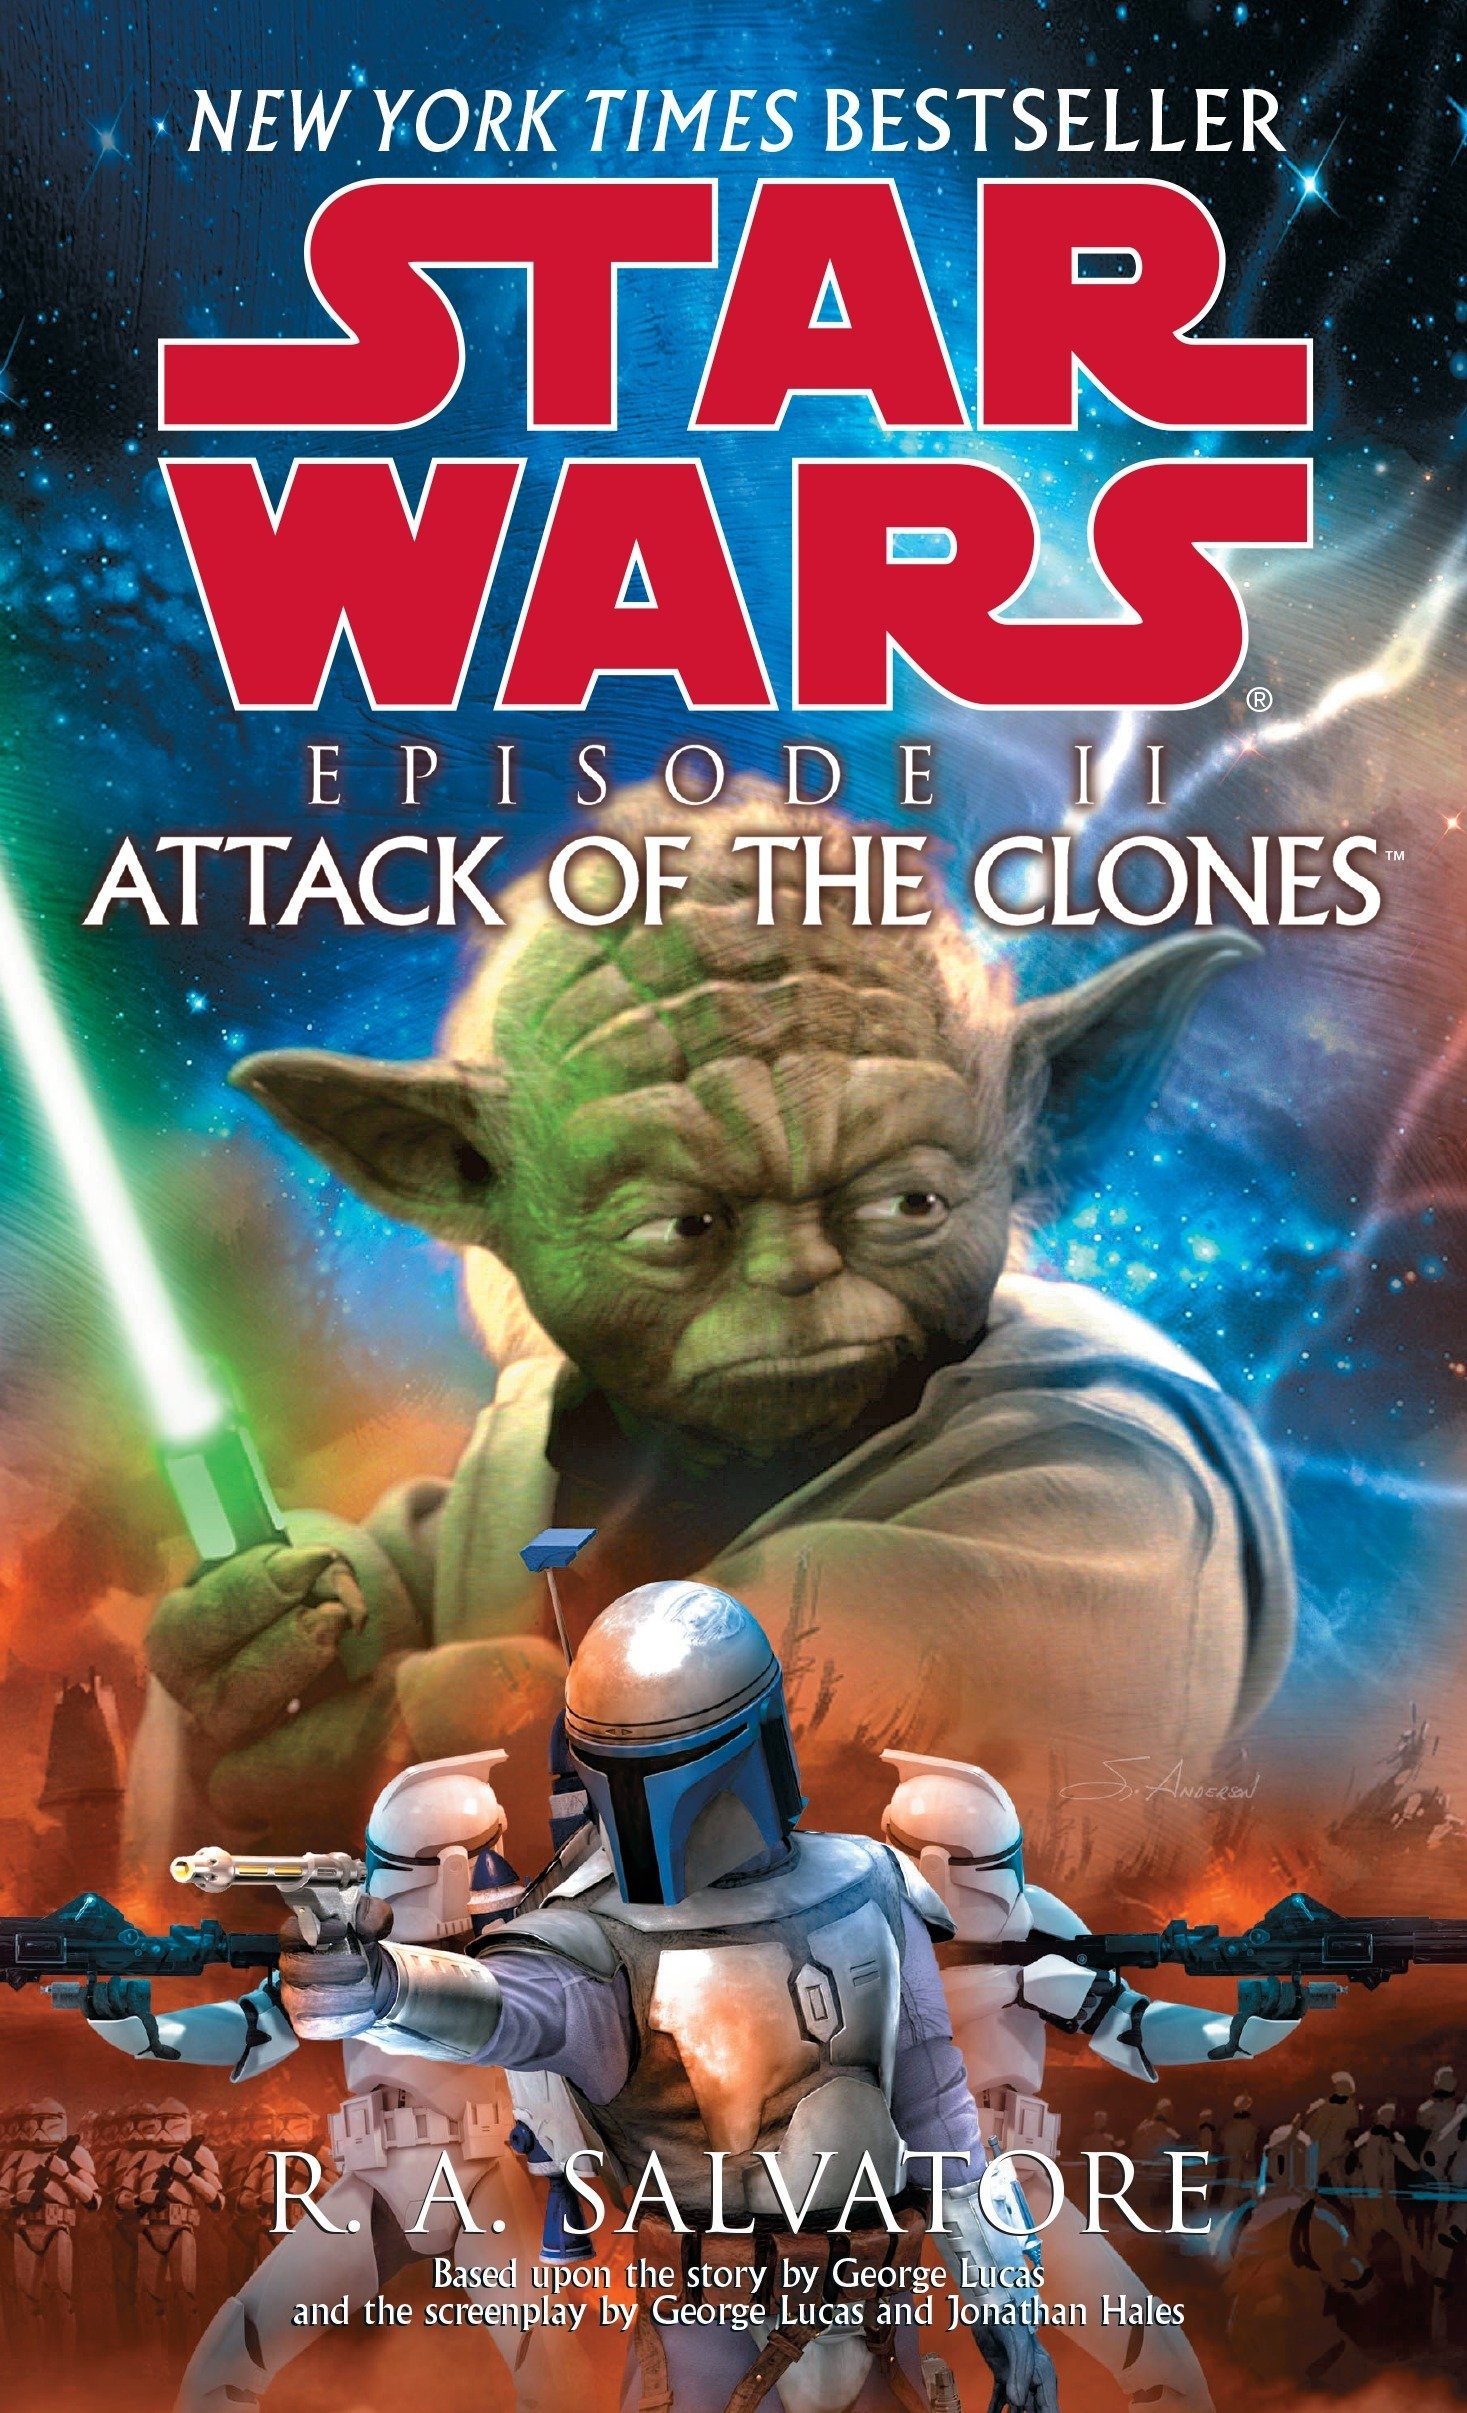 Star Wars Episode II: Attack of the Clones (paperback)